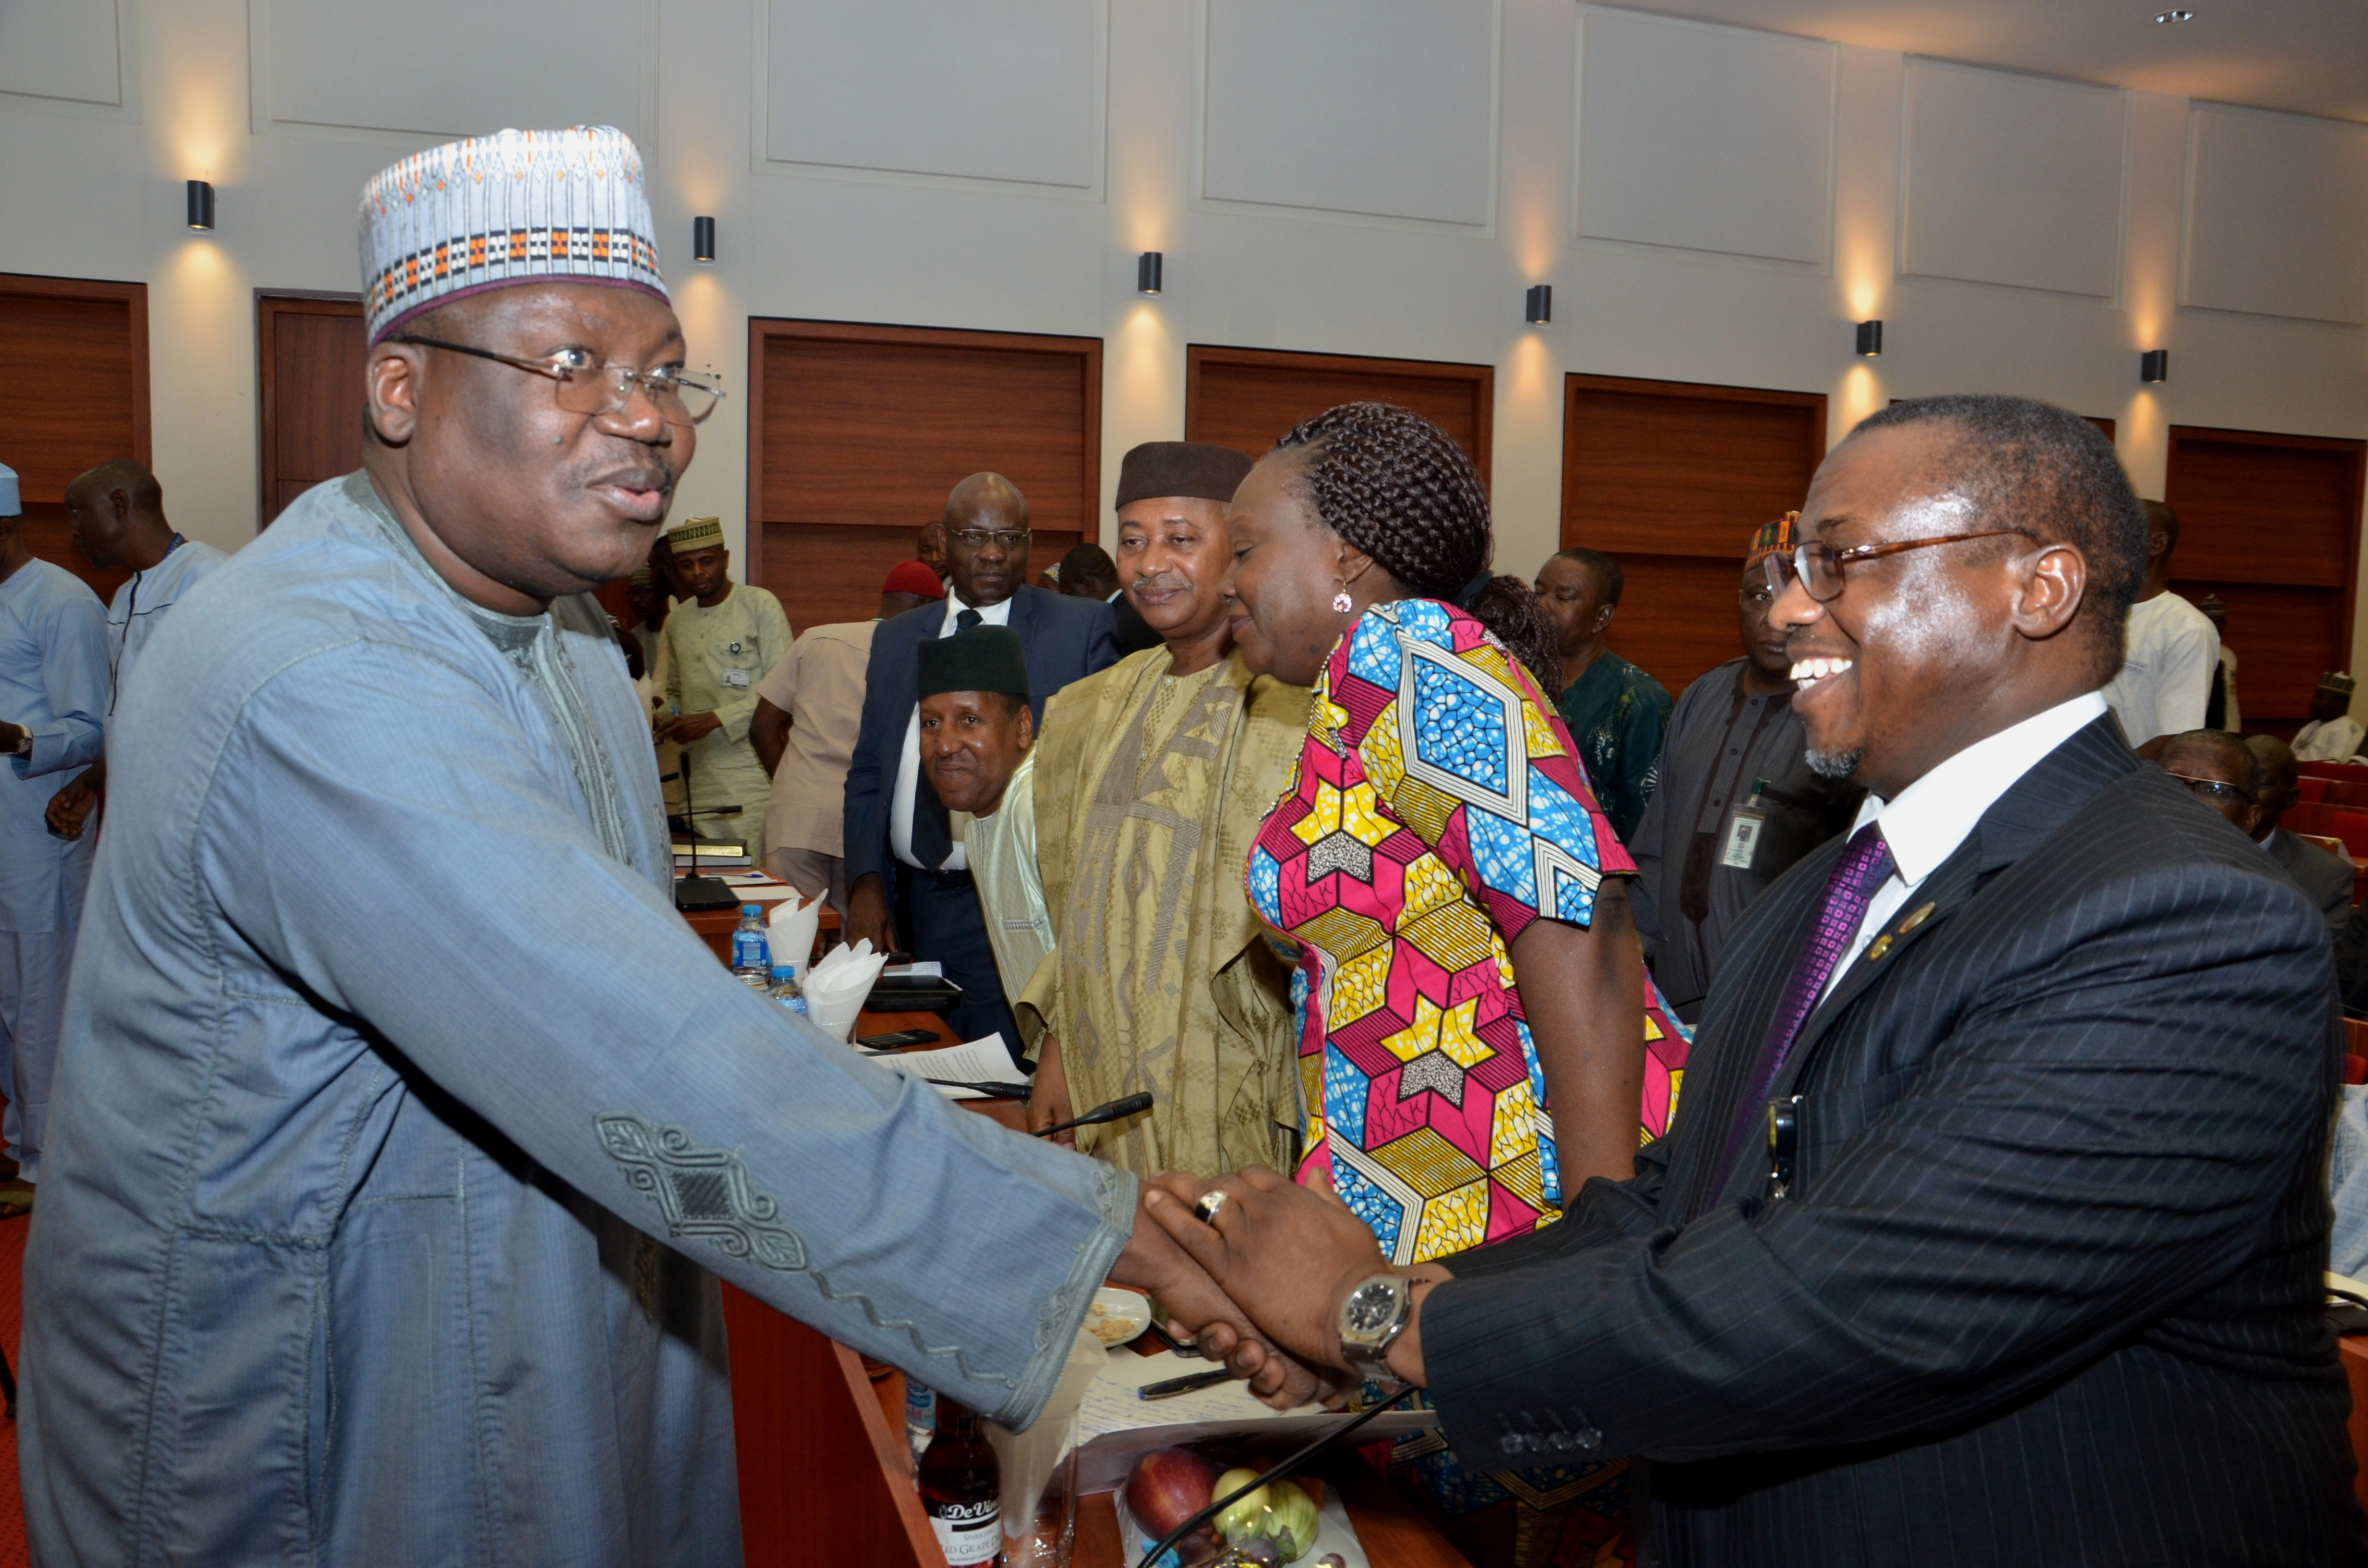 NNPC Cries Out, Says FG Owes Corporation N170.6 Billion Outstanding Subsidy Payments